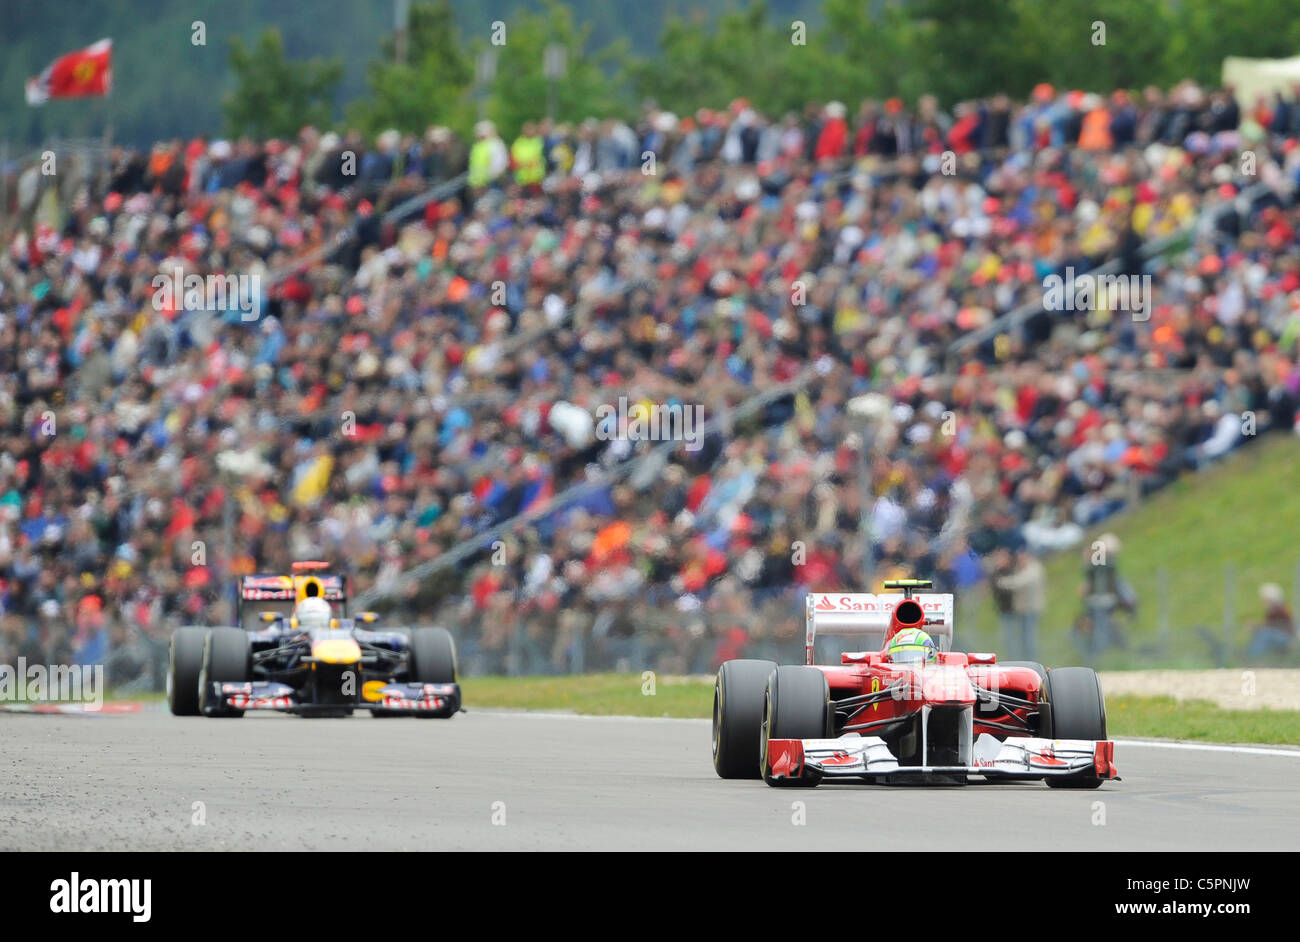 Massa and Vettel in front of the crowds at the German Formula One Grand Prix on Nürburgring racetrack in Germany - Stock Image